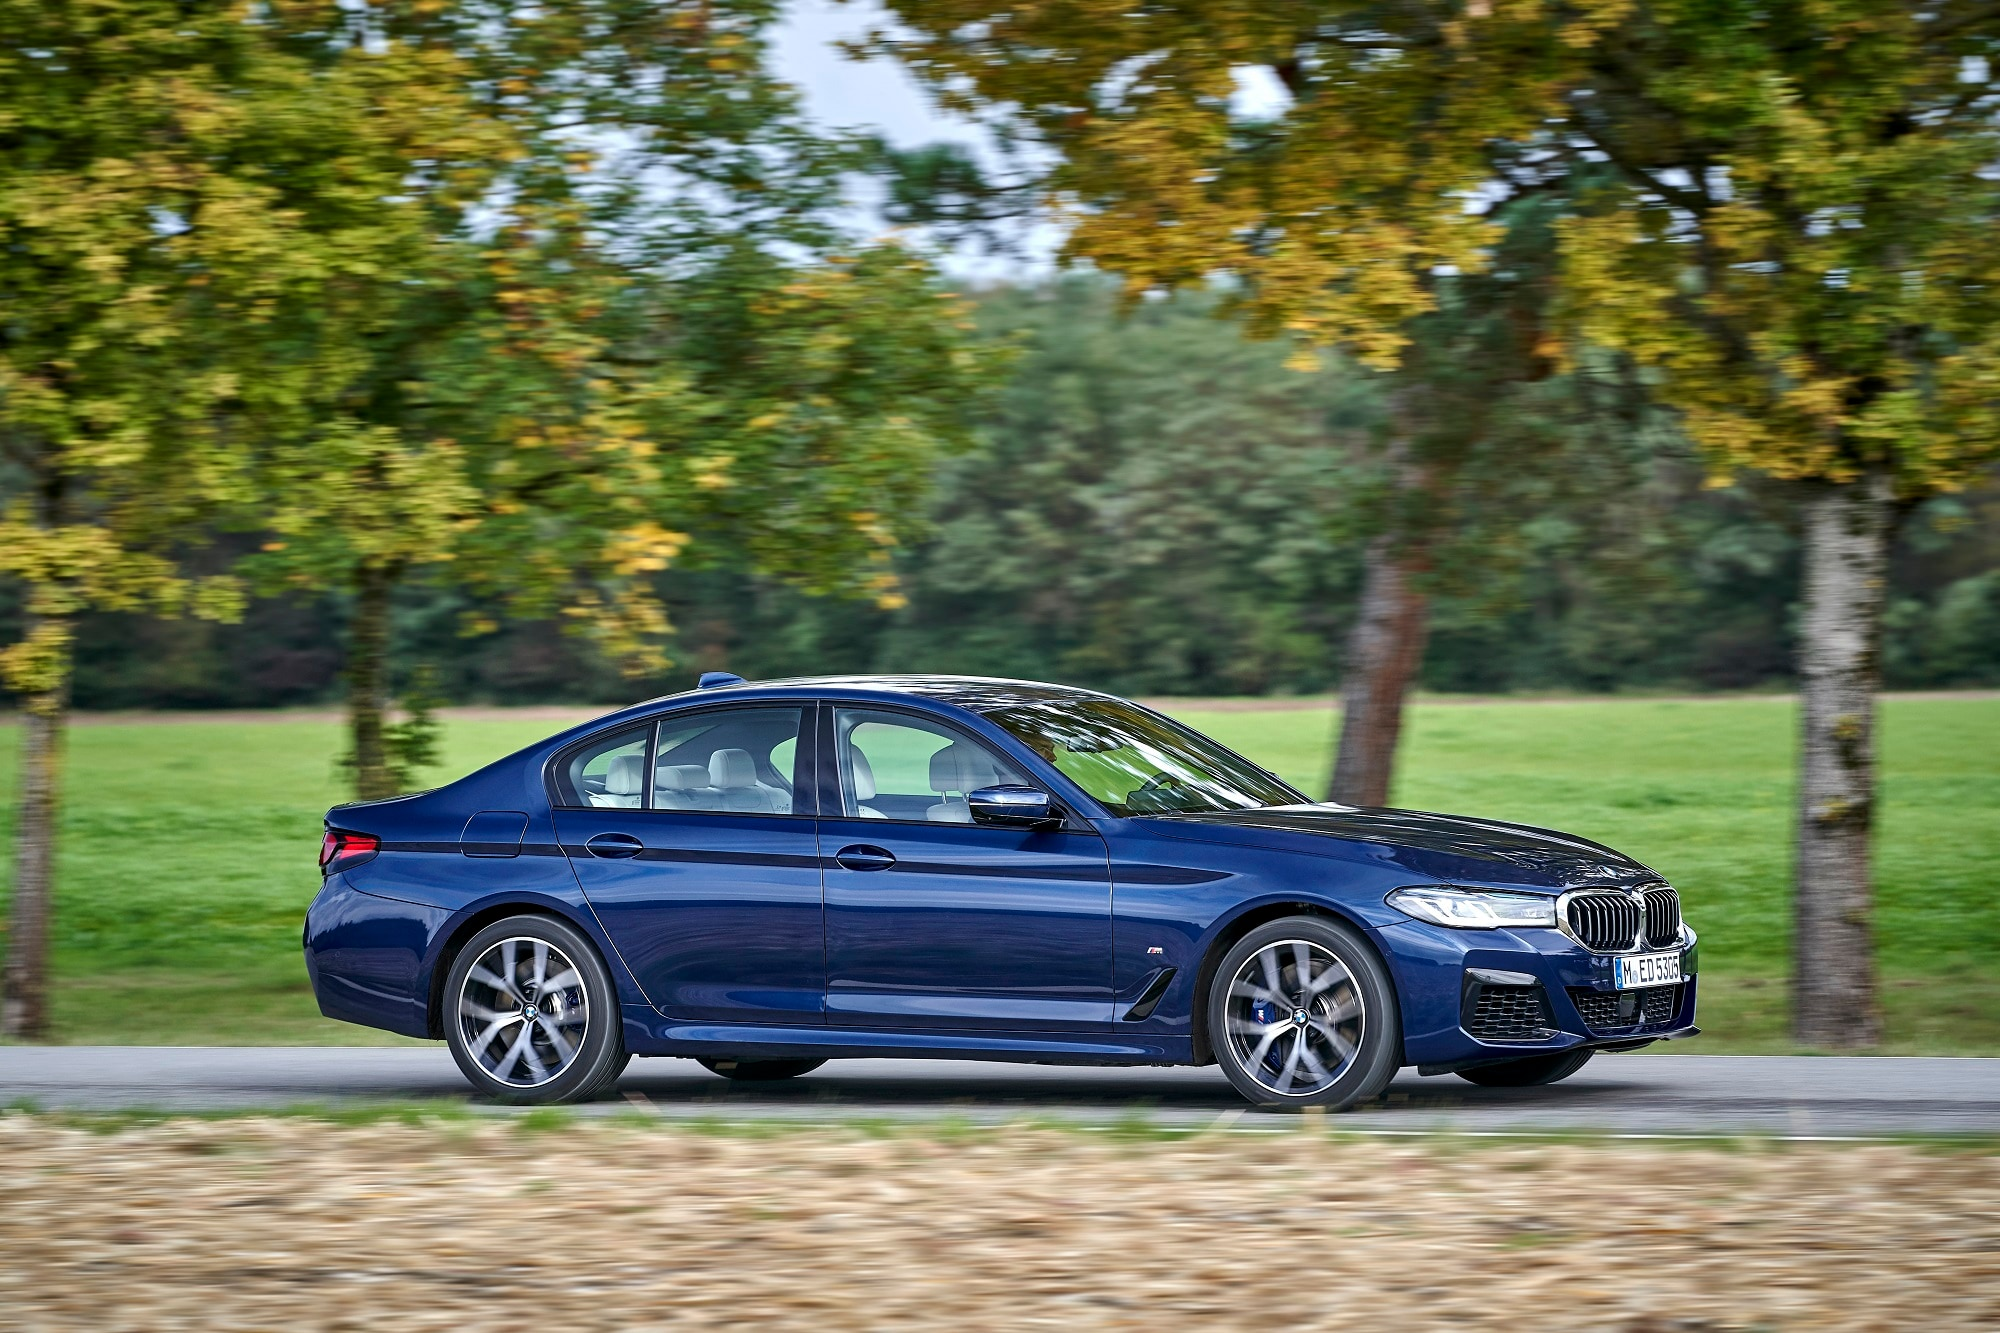 The new 5 Series is going to be available in one petrol (BMW 530i M Sport) and two diesel variants (BMW 530d M Sport and BMW 520d Luxury Line).